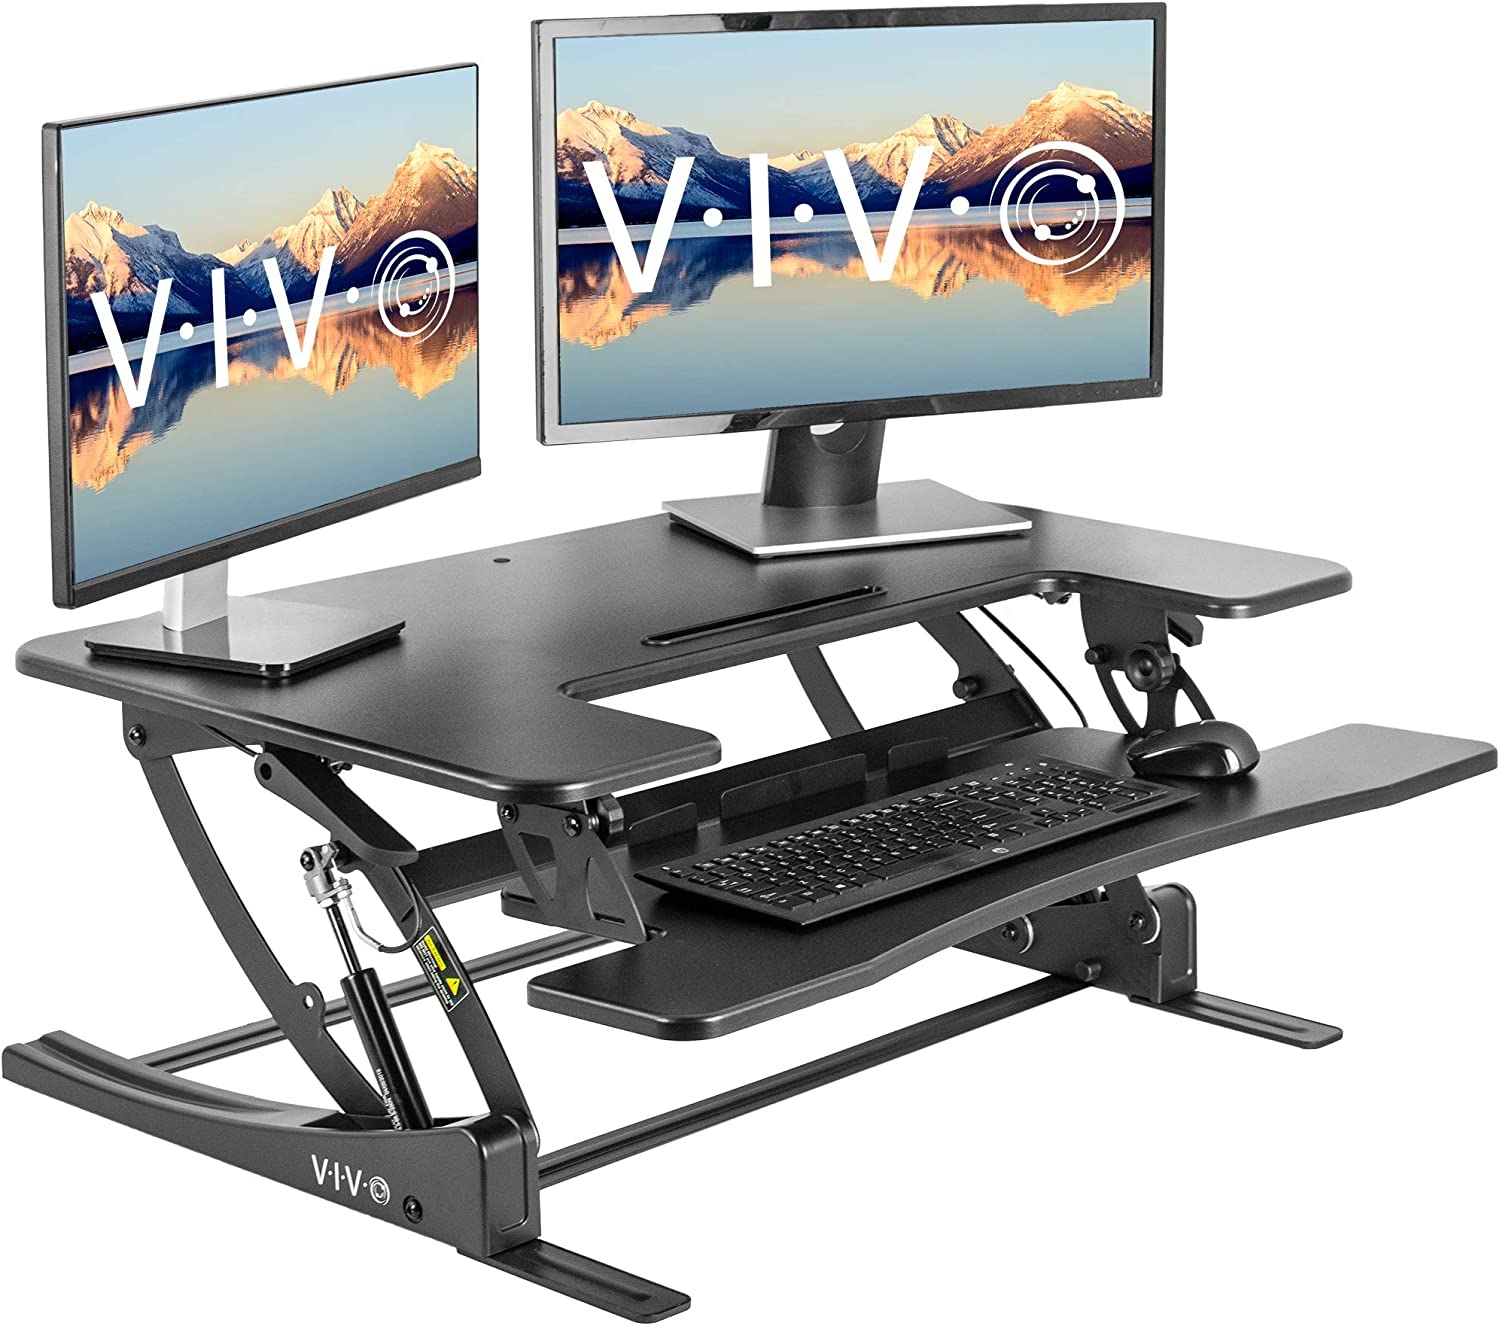 VIVO Black Height Adjustable 36 inch Stand Up Desk Converter Workstation | Quick Sit to Stand Tabletop Monitor Riser with Extra Large Keyboard Tray (DESK-V000V2)